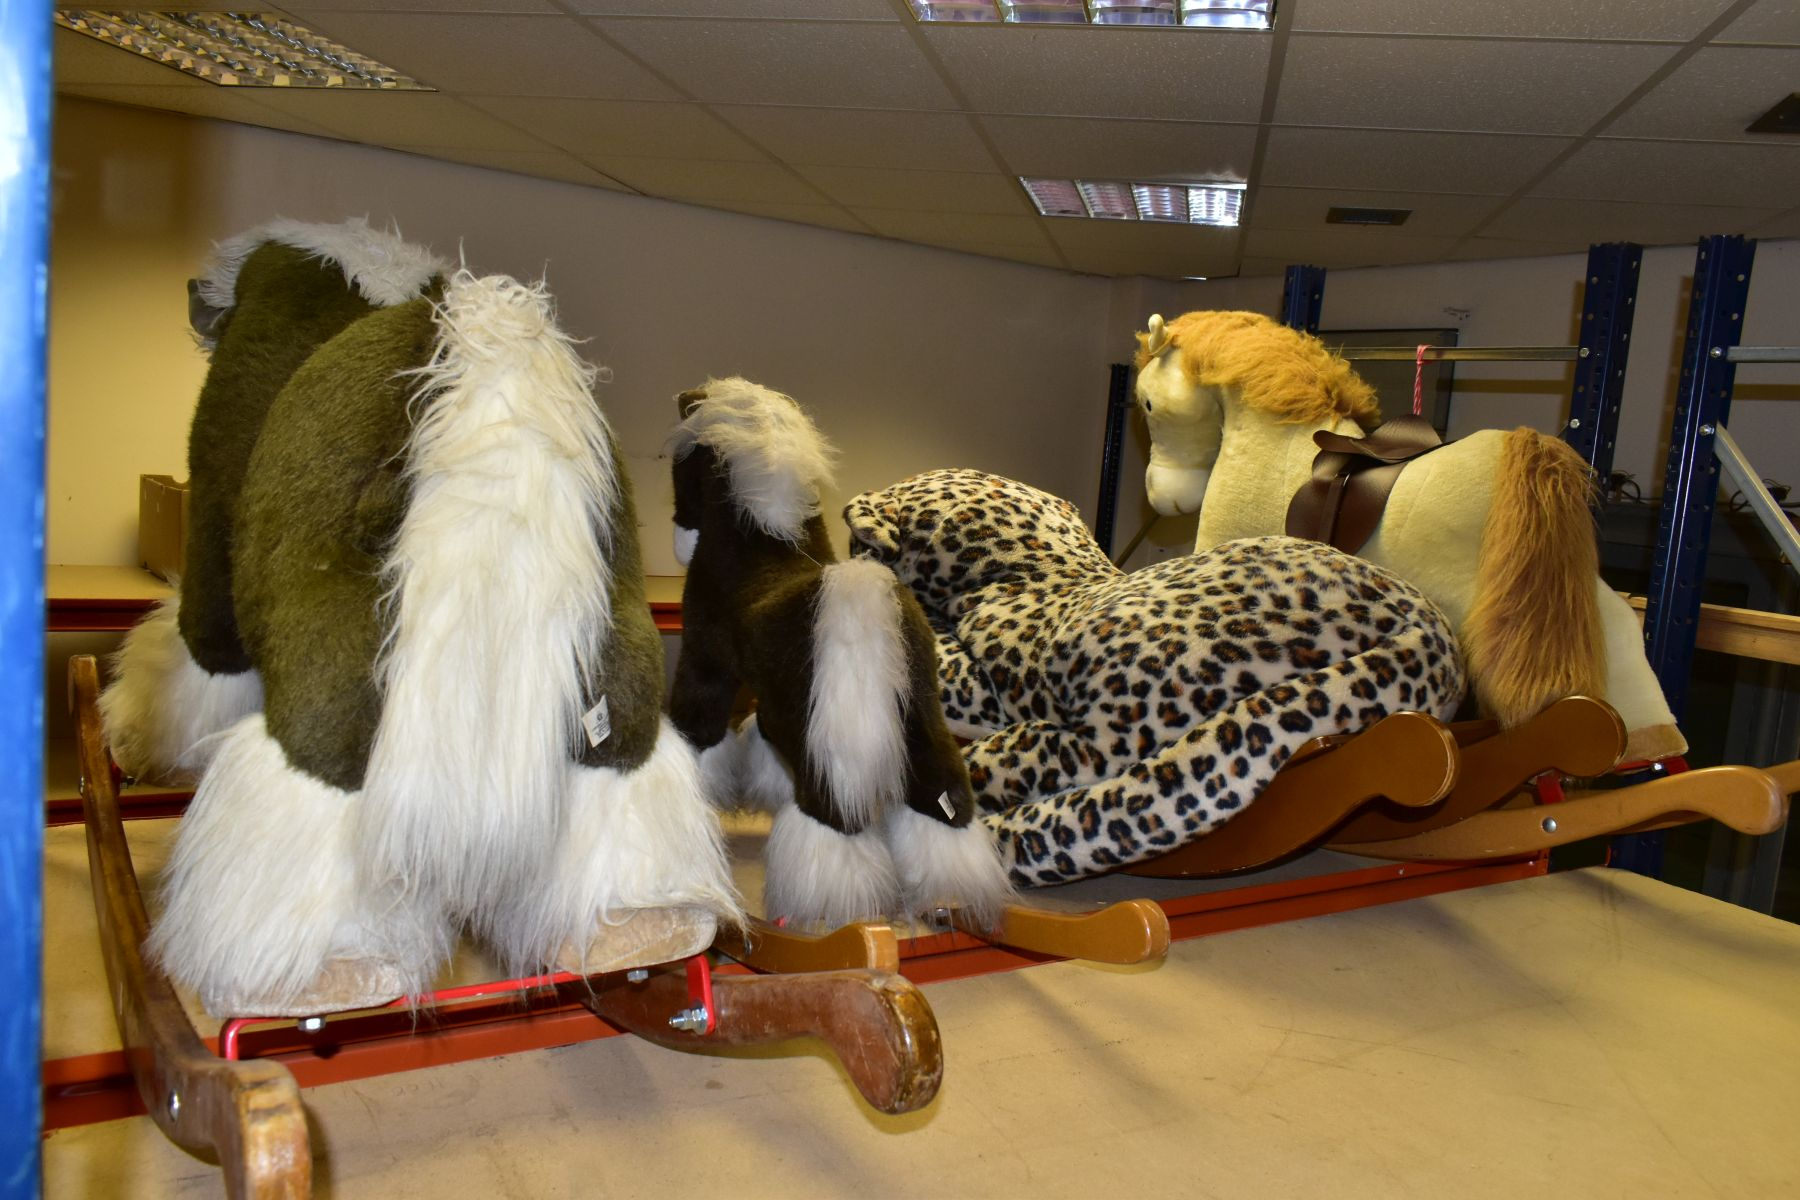 A MERRYTHOUGHT ROCKING LEOPARD, with a small Merrythought Rocking Horse, both in playworn - Image 9 of 18